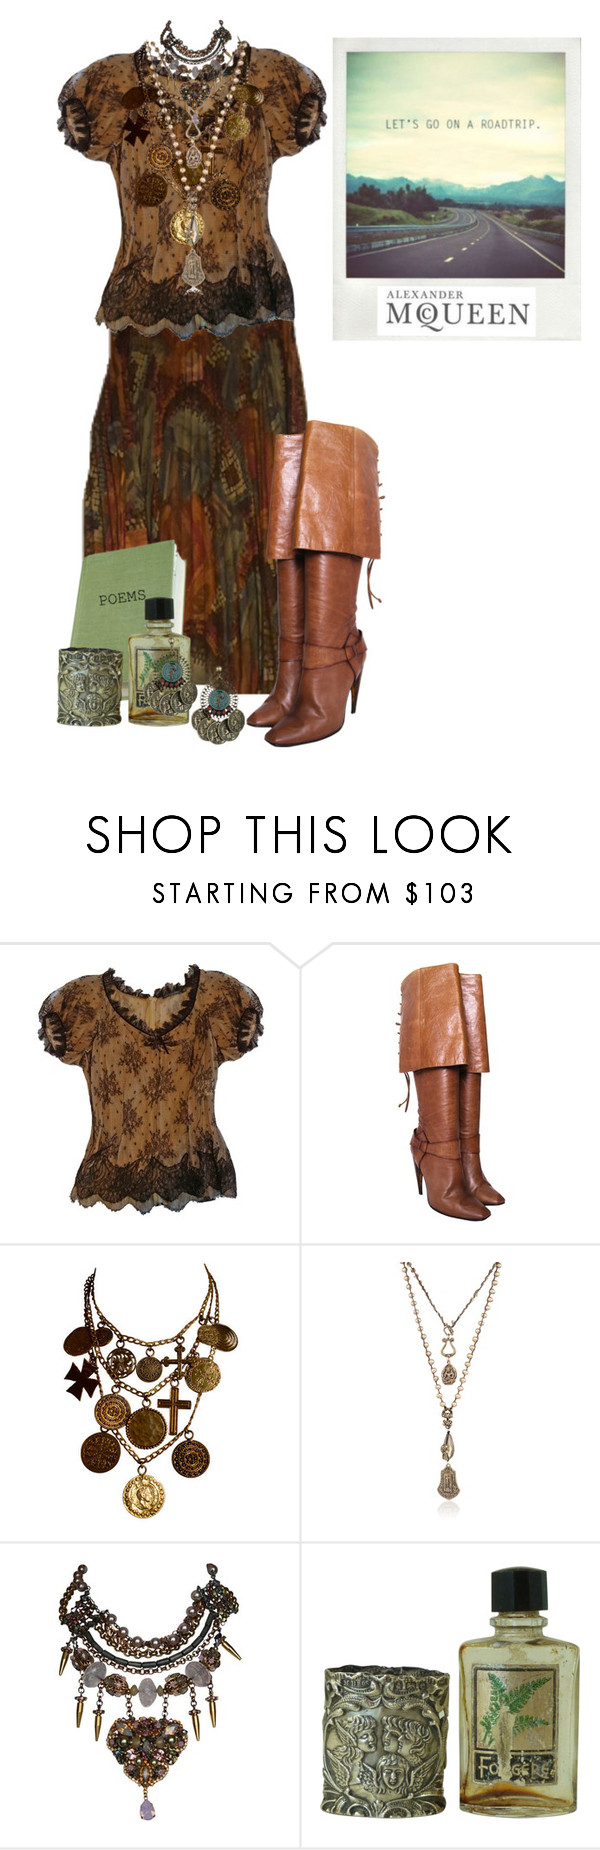 """""""~Alexander McQueen~"""" by confusgrk ❤ liked on Polyvore featuring Alexander McQueen, Yves Saint Laurent, Love Heals, Erickson Beamon, Topshop and AmiciMei"""